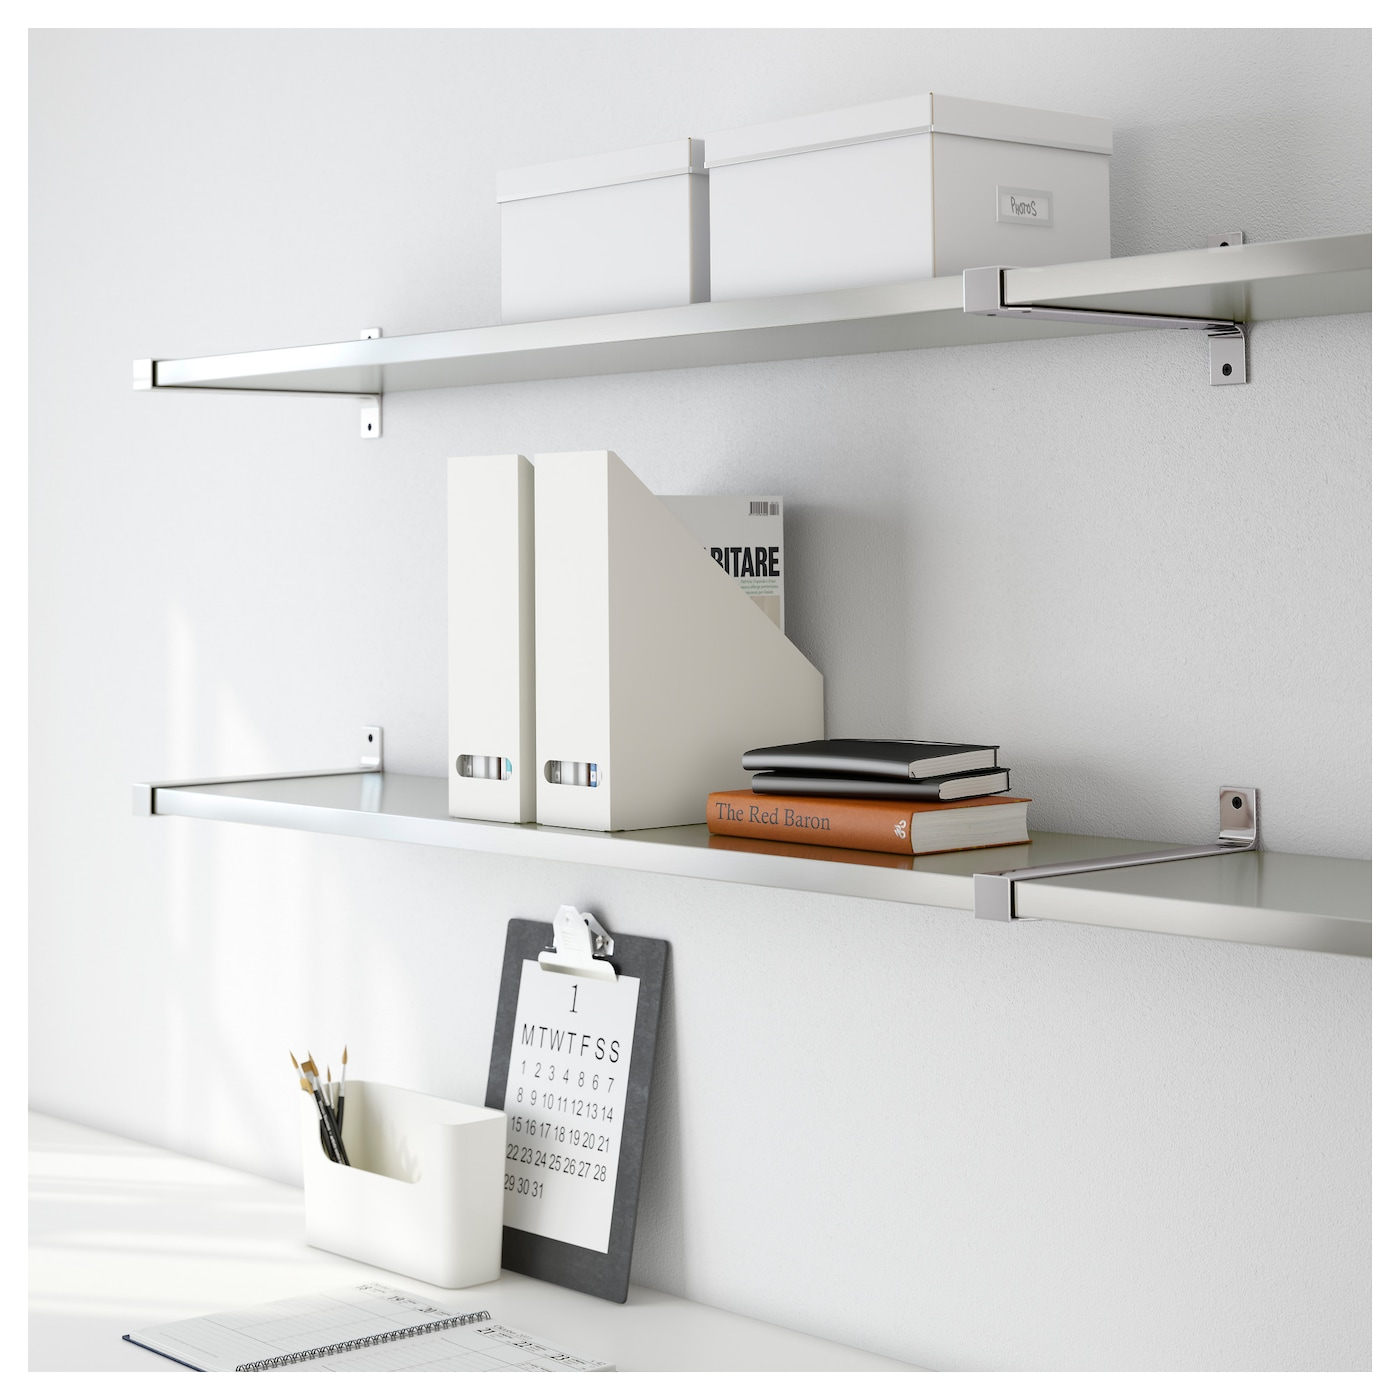 Stainless Steel Shelves Ekby Bjrnum Ekby Mossby Wall Shelf Stainless Steel 239x28 Cm Ikea